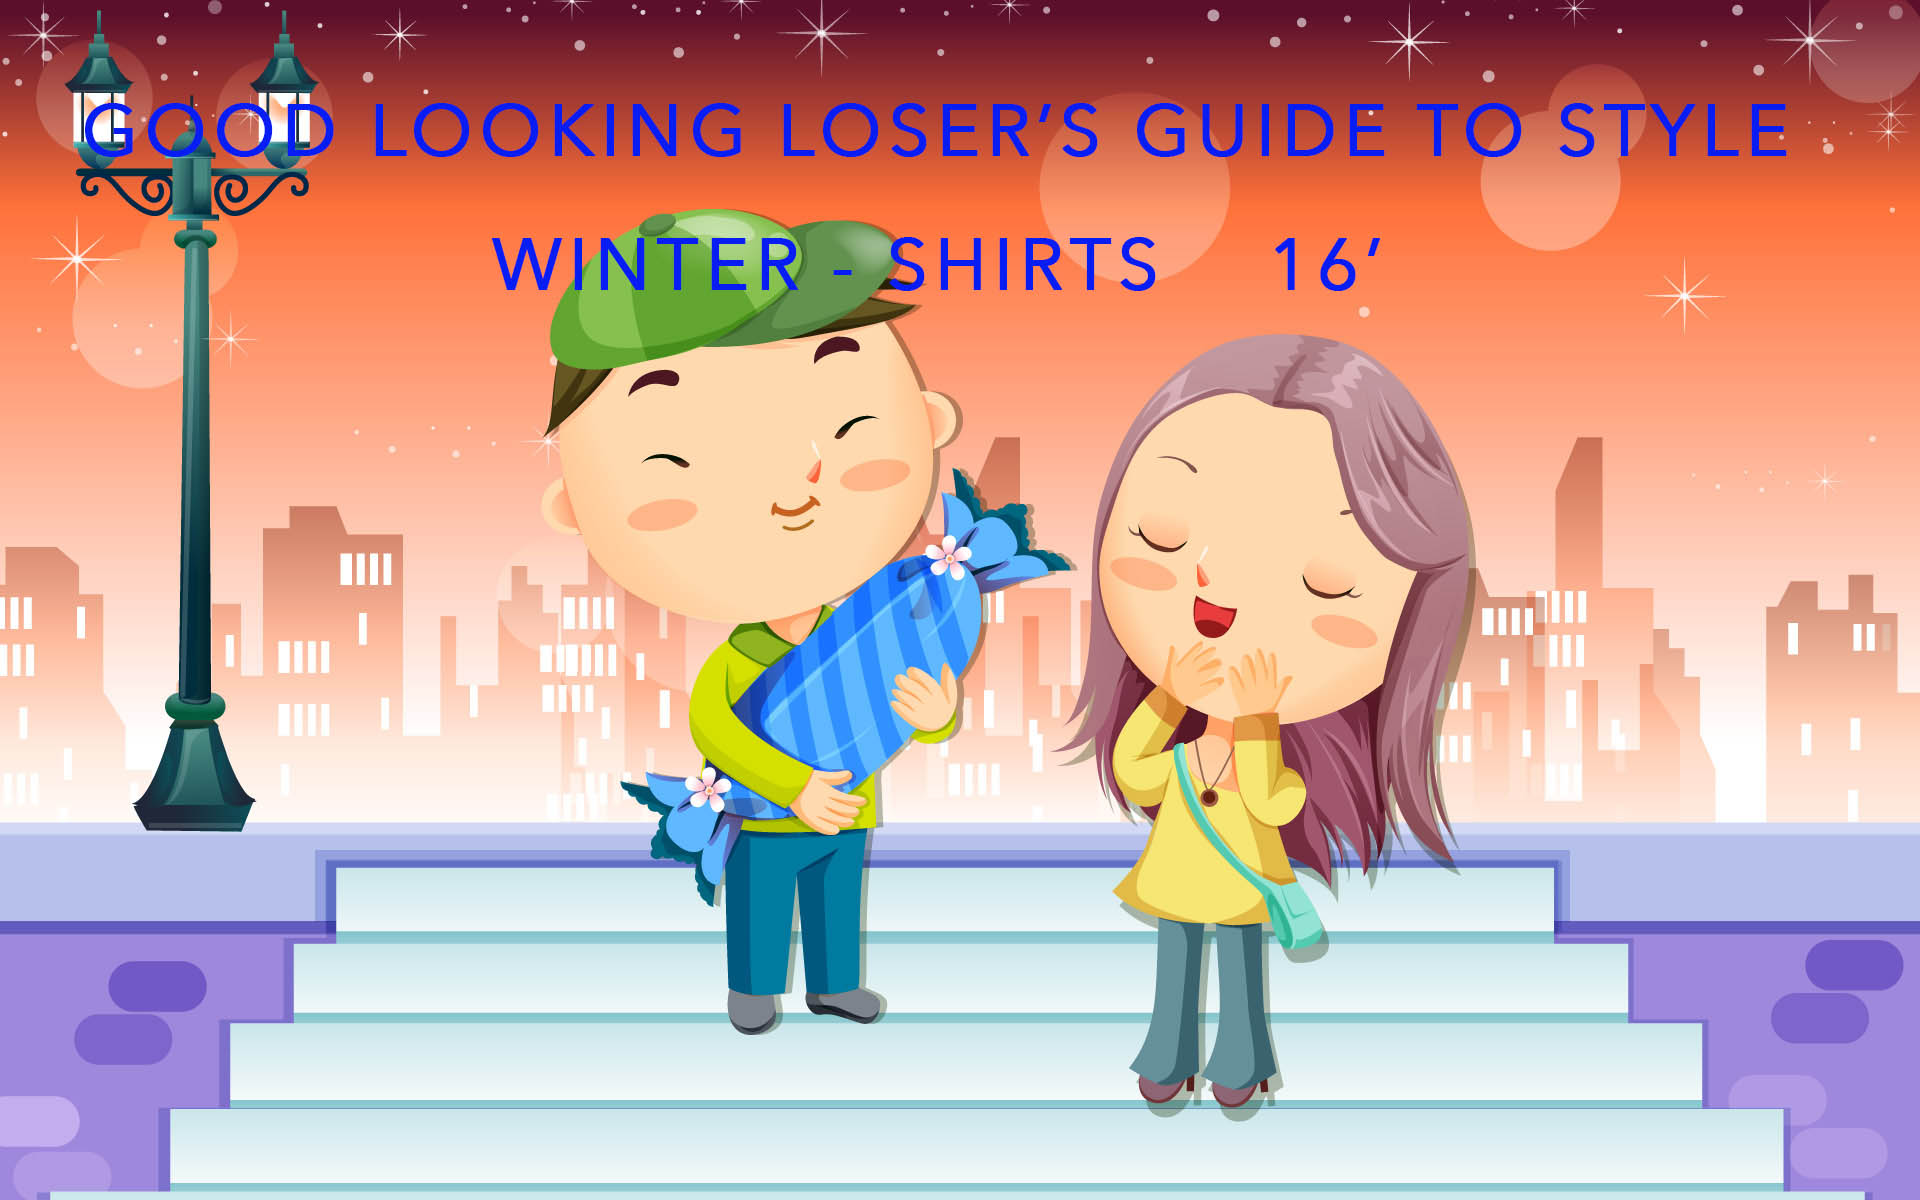 Good Looking Loser's Winter 2016 Guide to Style (Shirts)